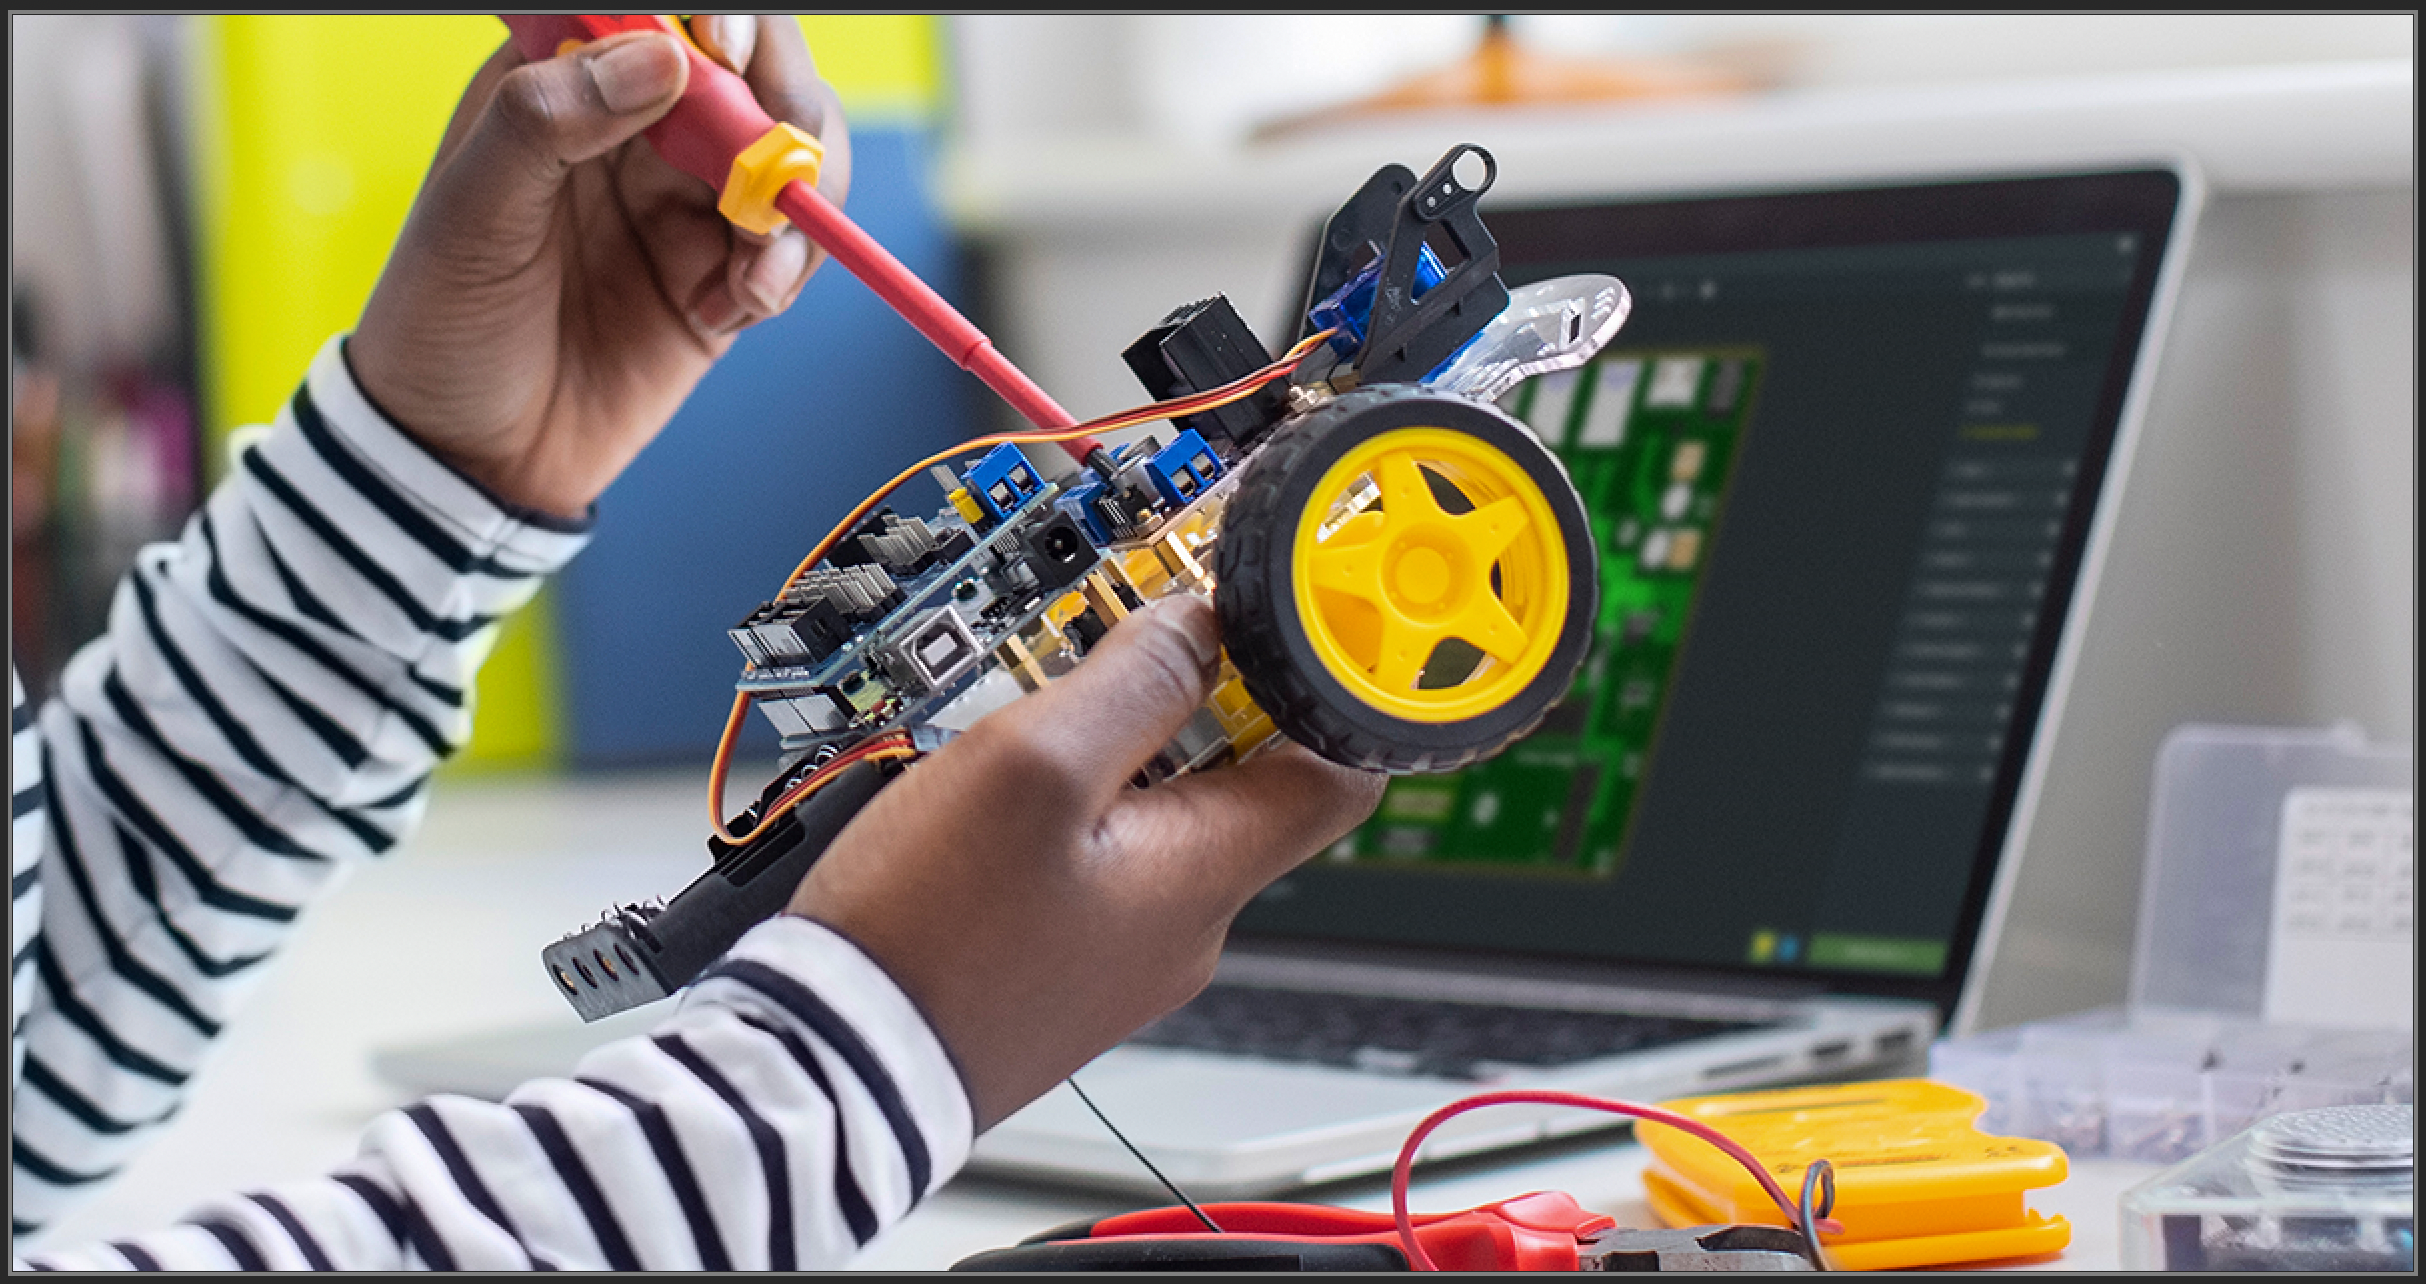 Altium Advances STEM Education with Expanded Curriculum and New Partnerships